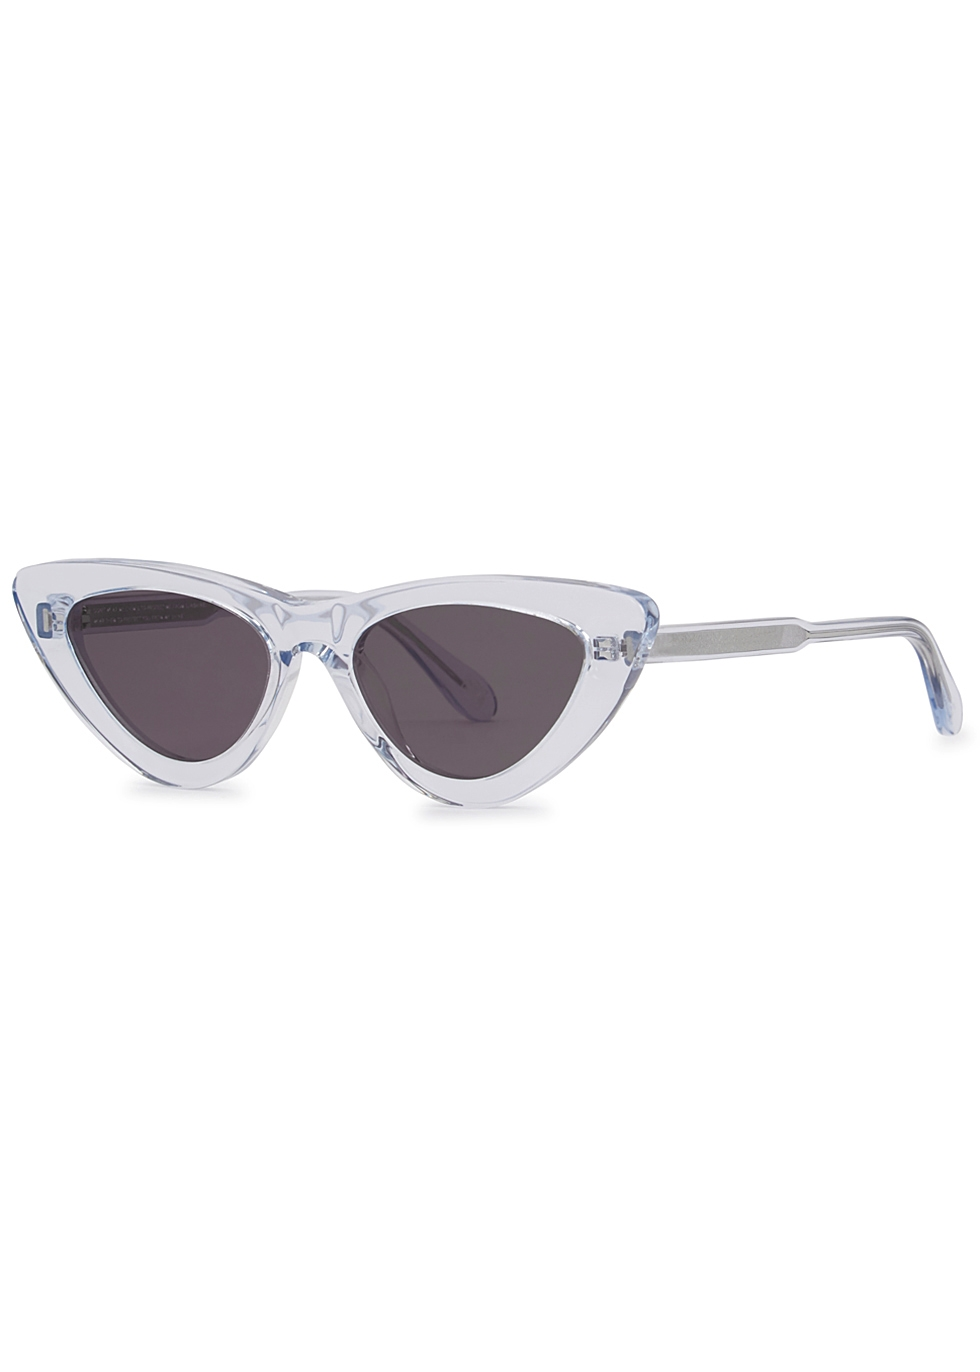 CHIMI 006 Transparent Blue Cat-Eye Sunglasses in Crystal